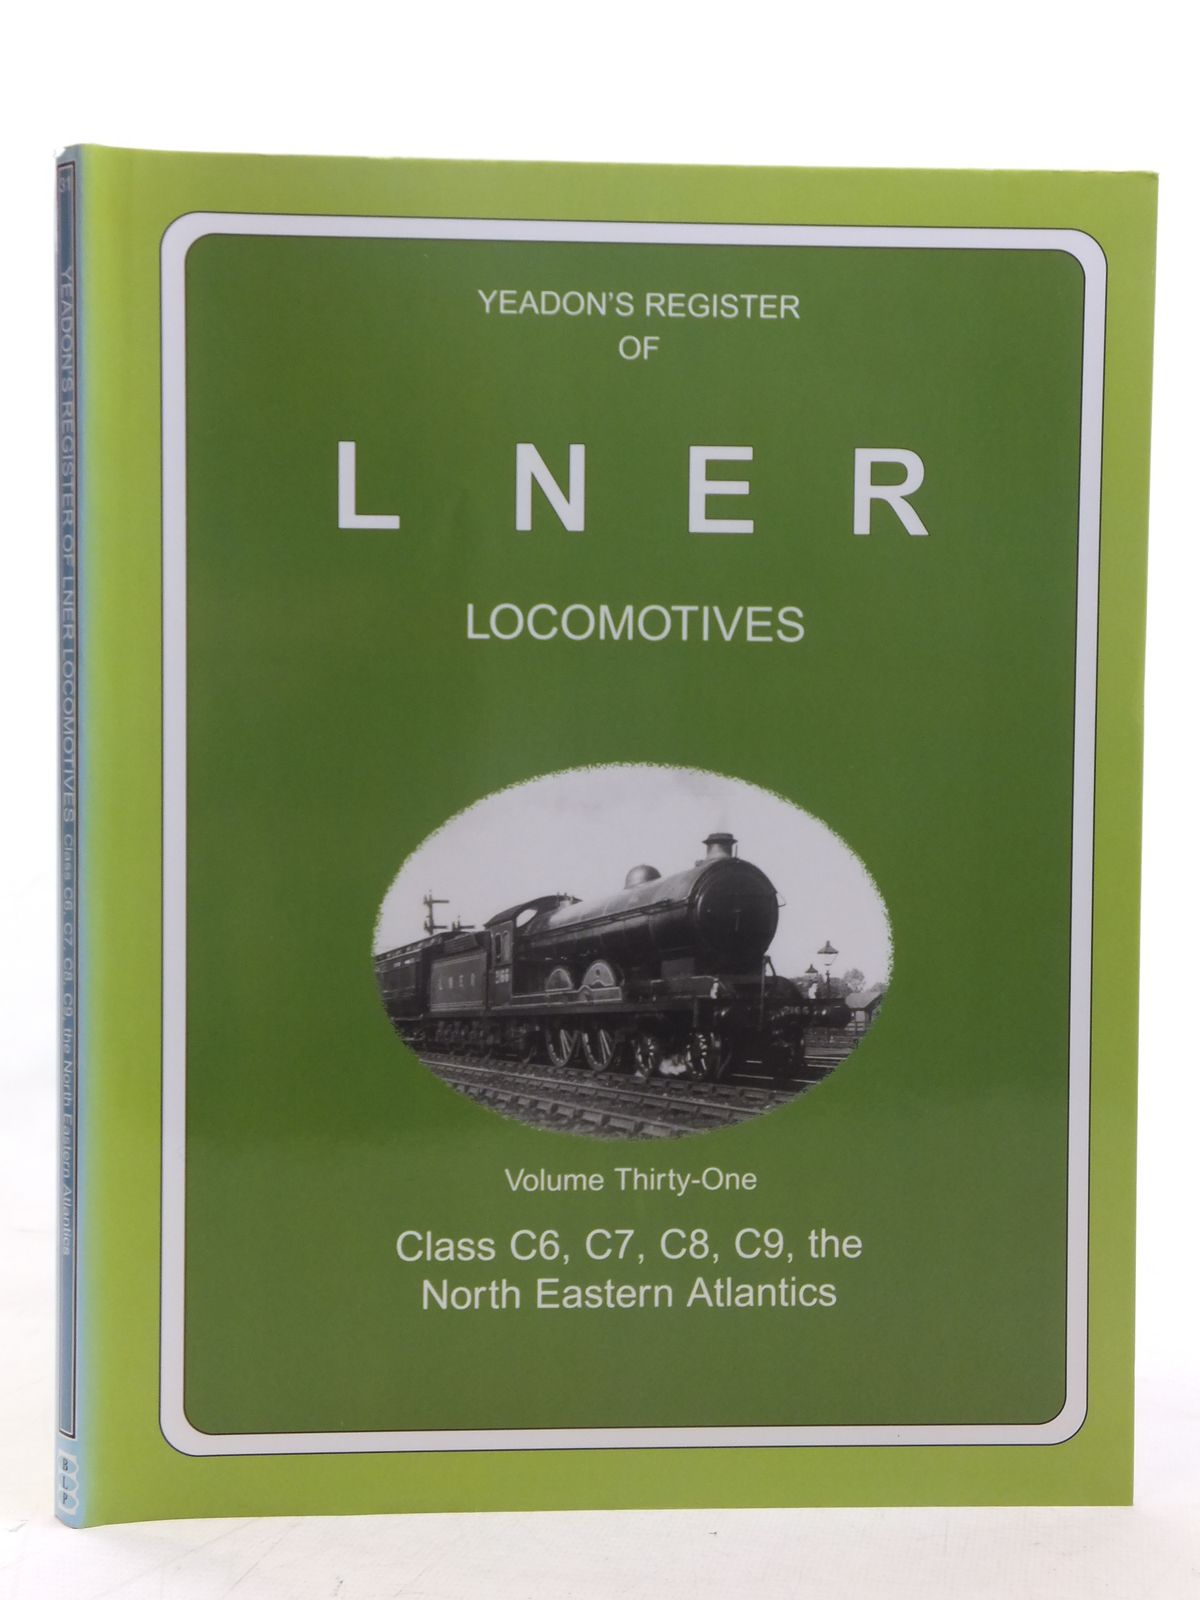 Photo of YEADON'S REGISTER OF LNER LOCOMOTIVES VOLUME THIRTY-ONE published by Book Law Publications, Challenger Publications (STOCK CODE: 1606938)  for sale by Stella & Rose's Books